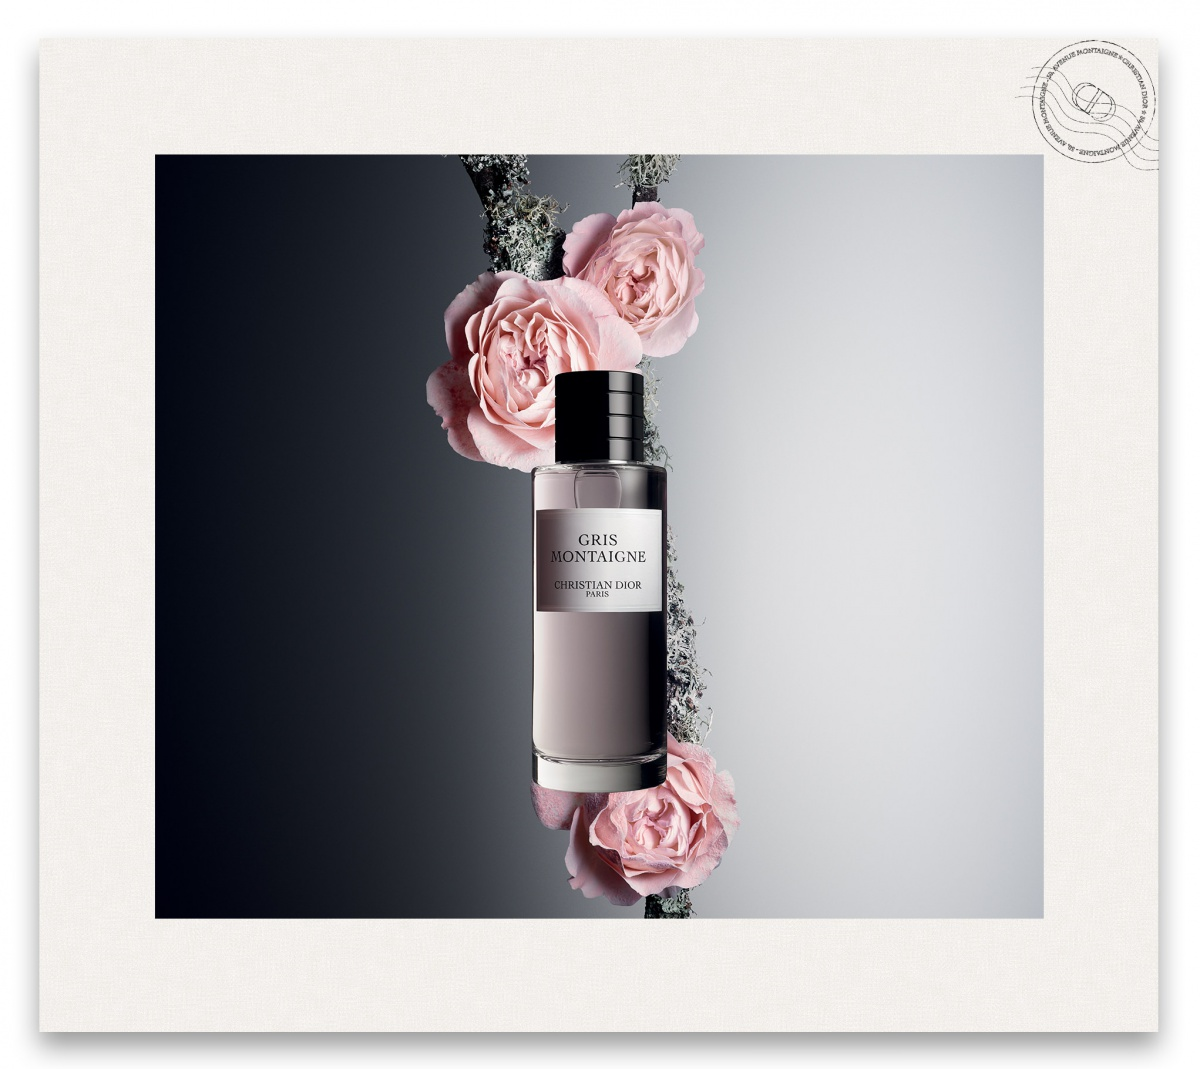 Christian Dior Gris Montaigne Card.jpg